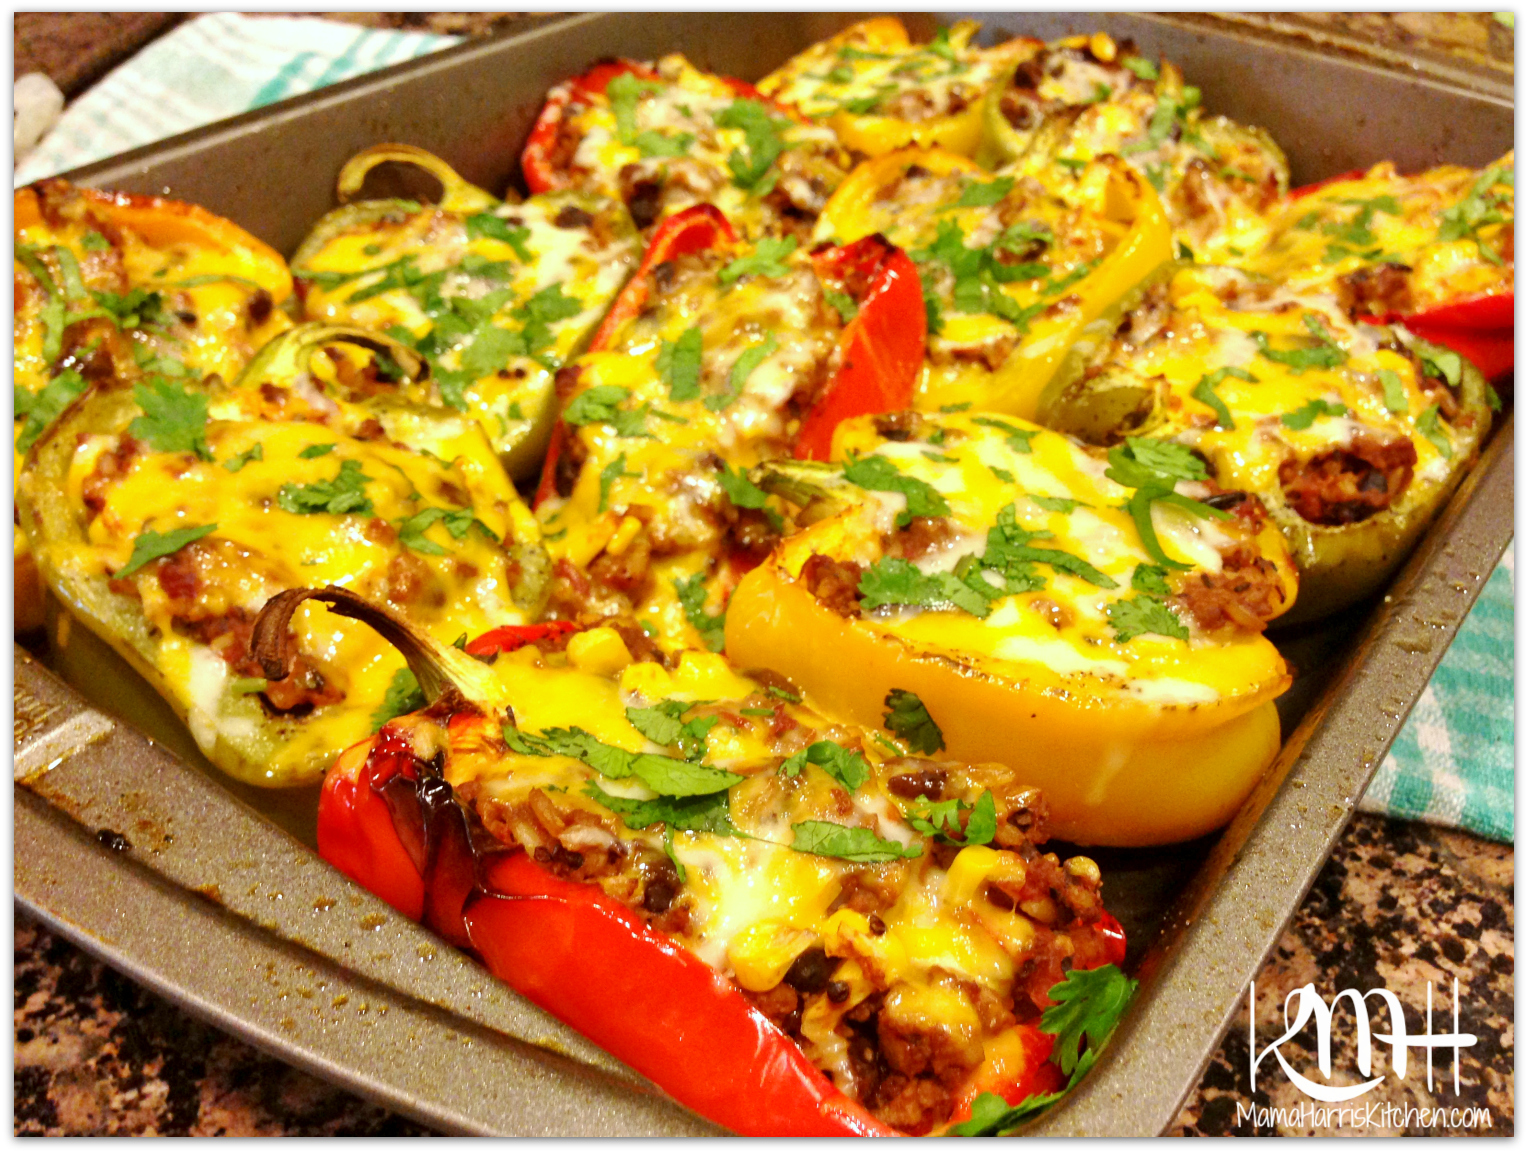 Roasted & Stuffed Bell Peppers | Mama Harris' Kitchen